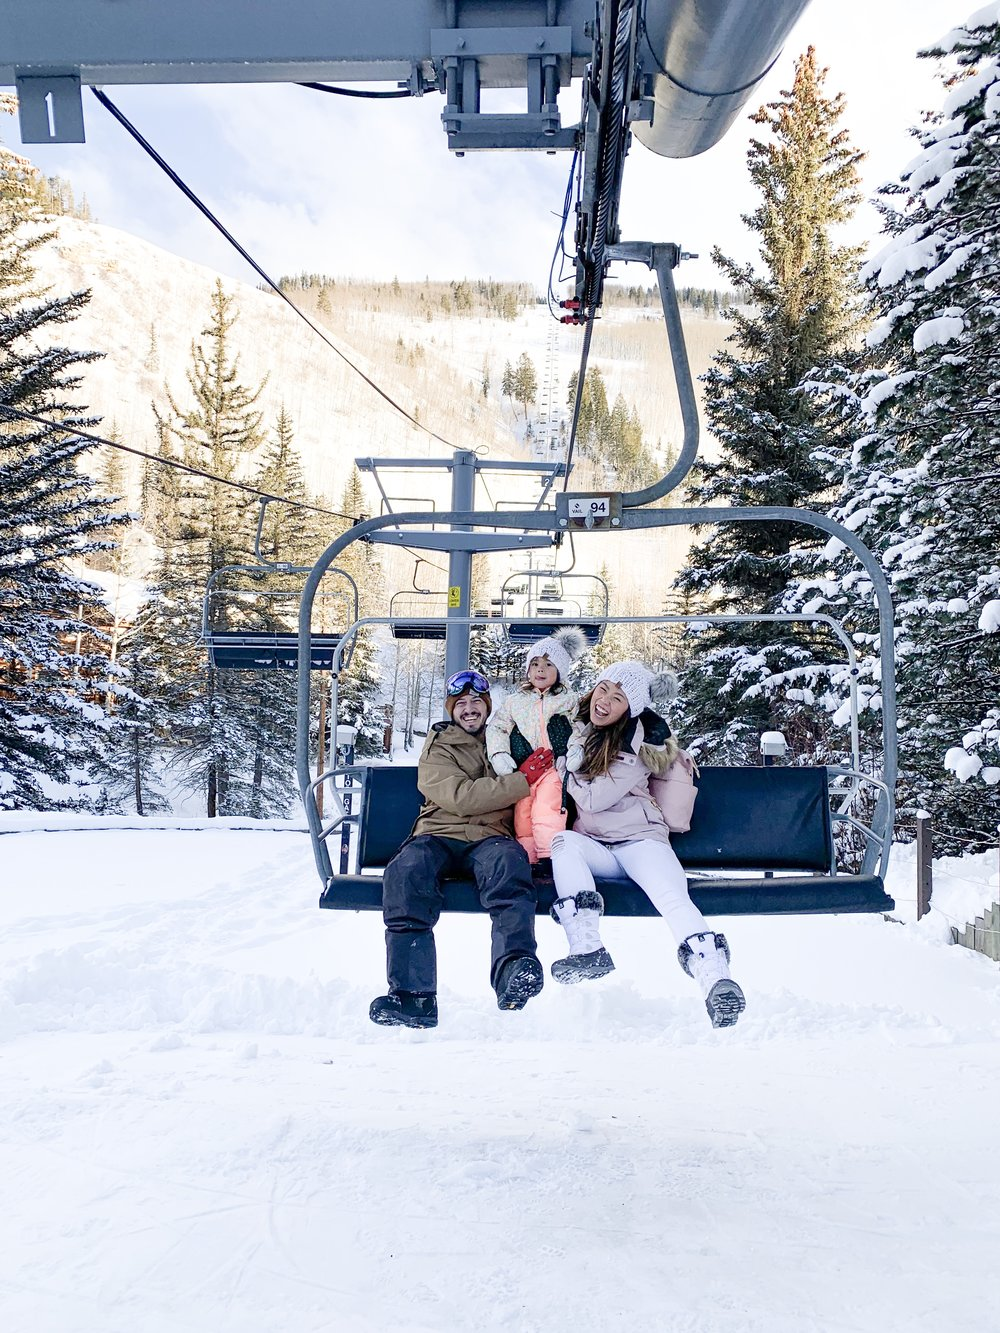 4 Days in Vail Colorado with a Toddler - How to Prepare for Baby's First Ski Trip and 5 Winter Family Activities Hotel Talisa Review Joyfullygreen Family Travel Blogger